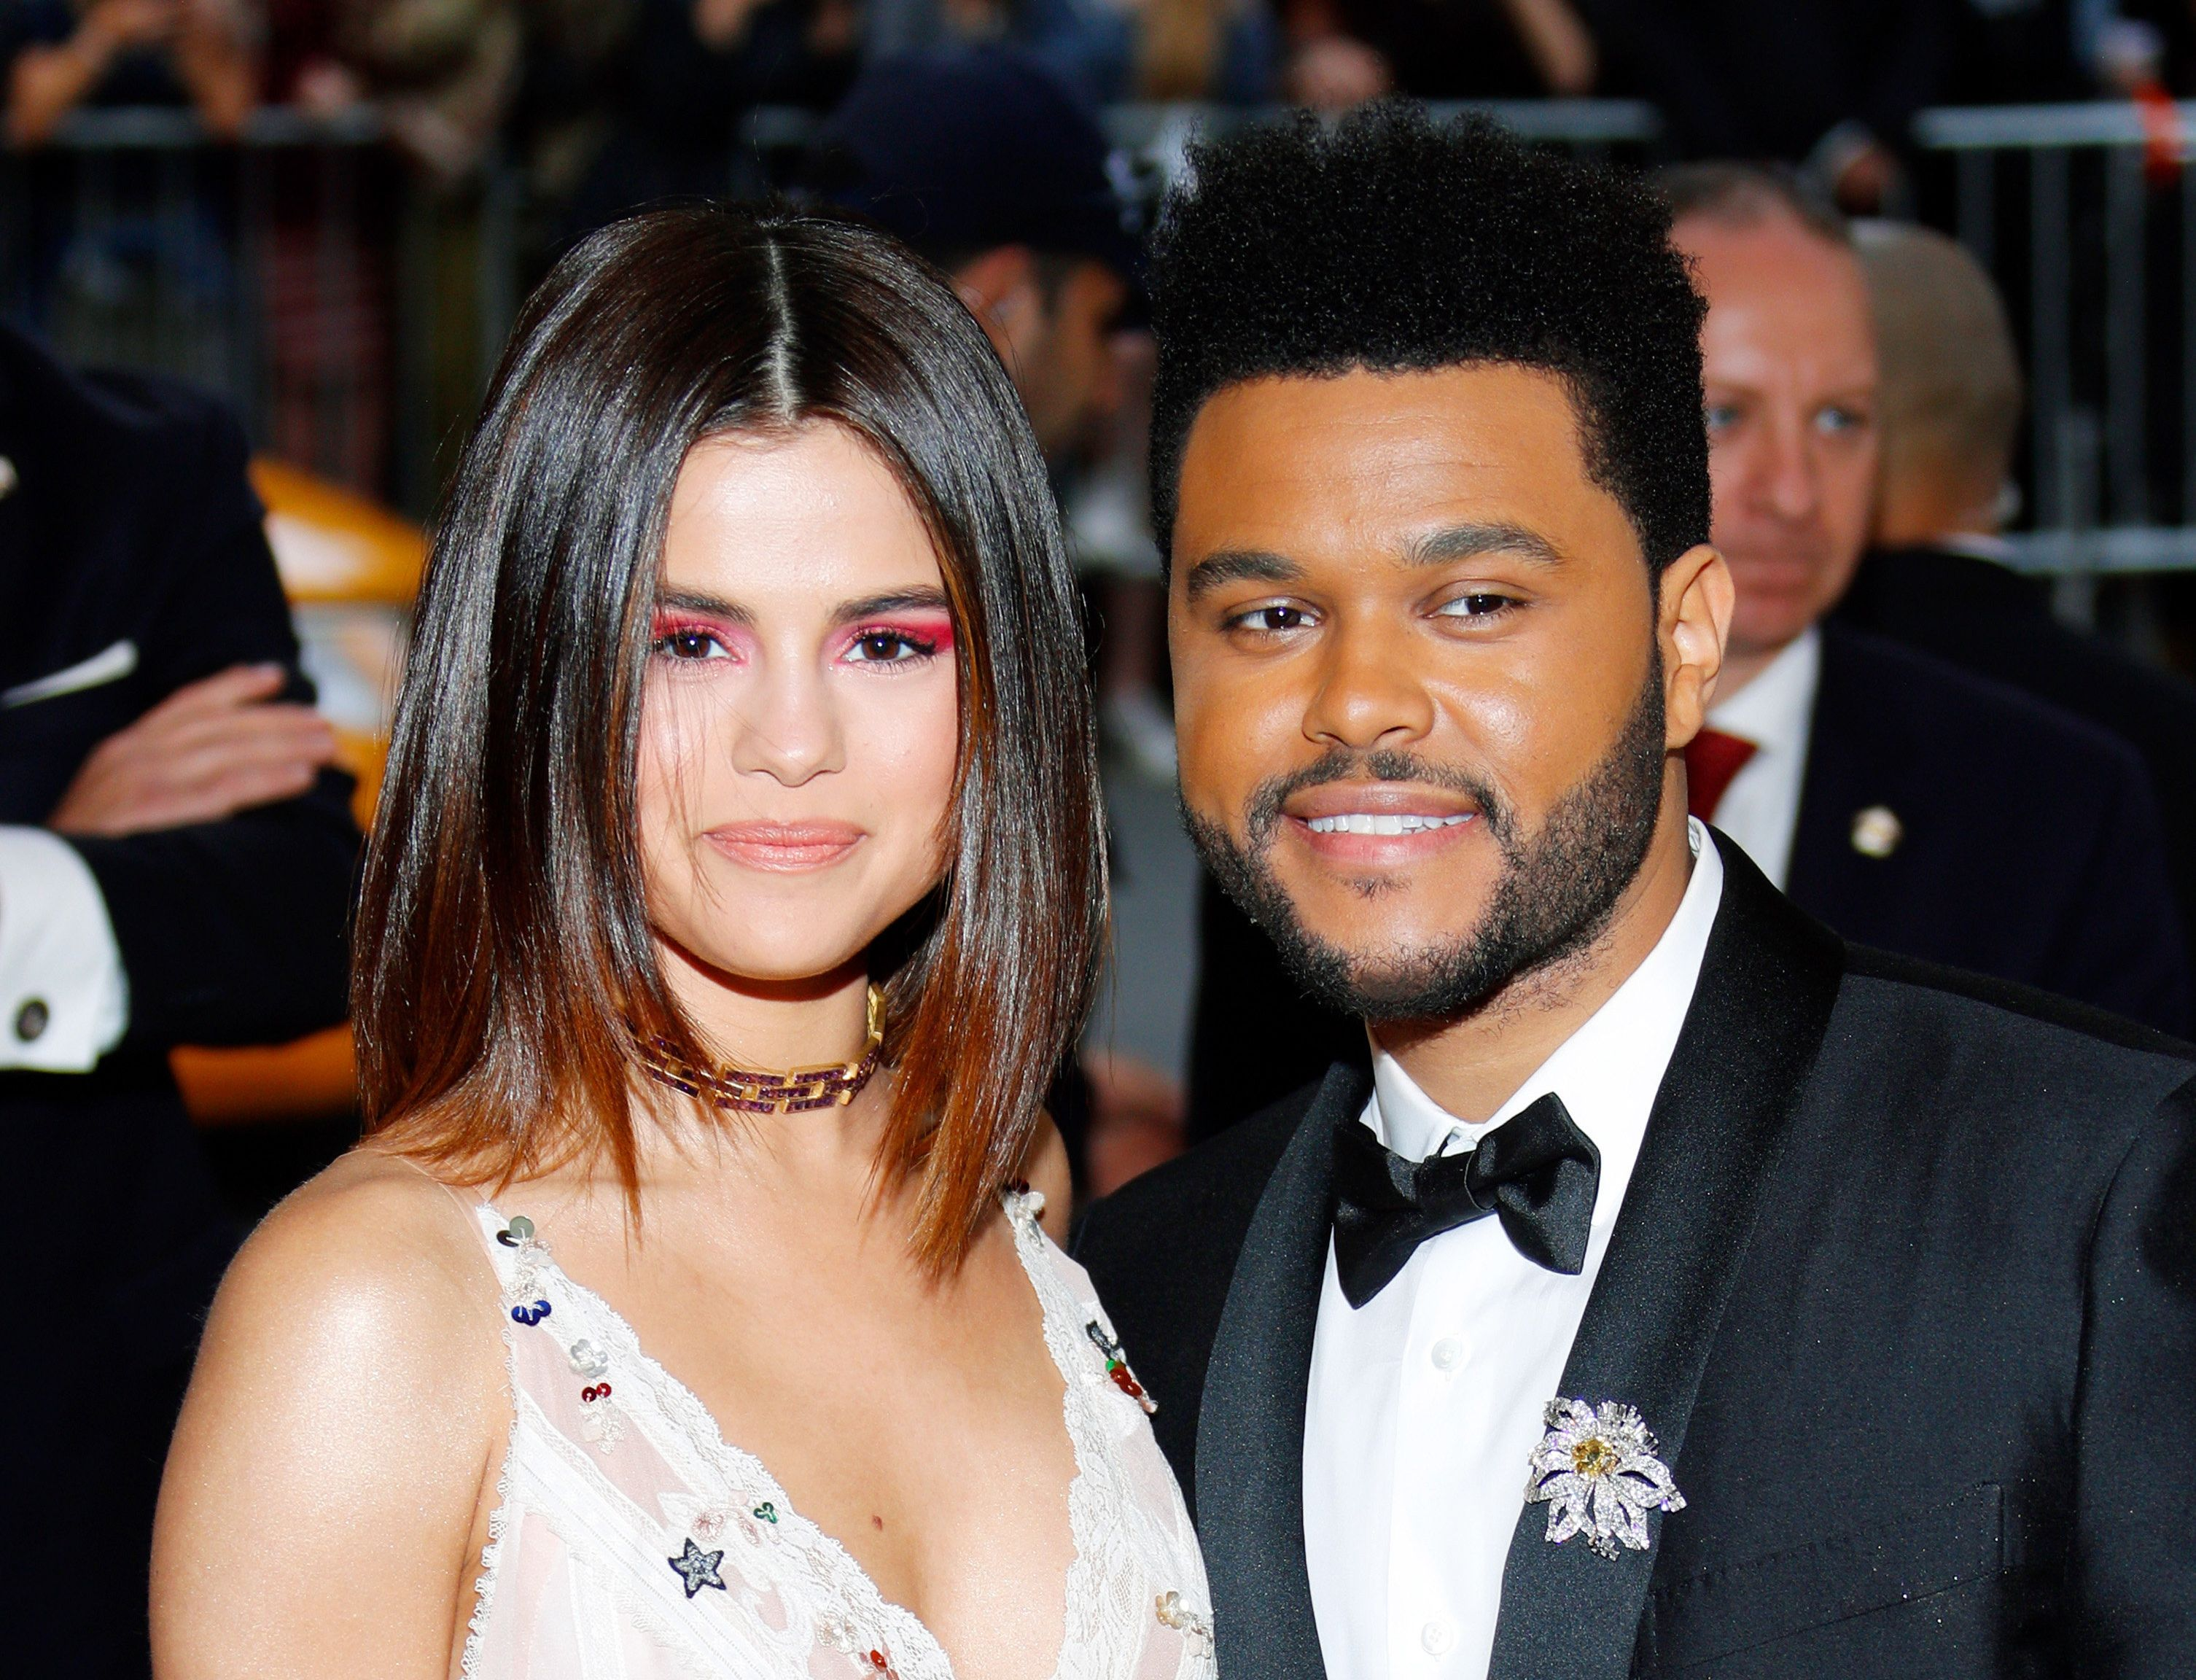 Selena Gomez and The Weeknd attend the Met Gala together.